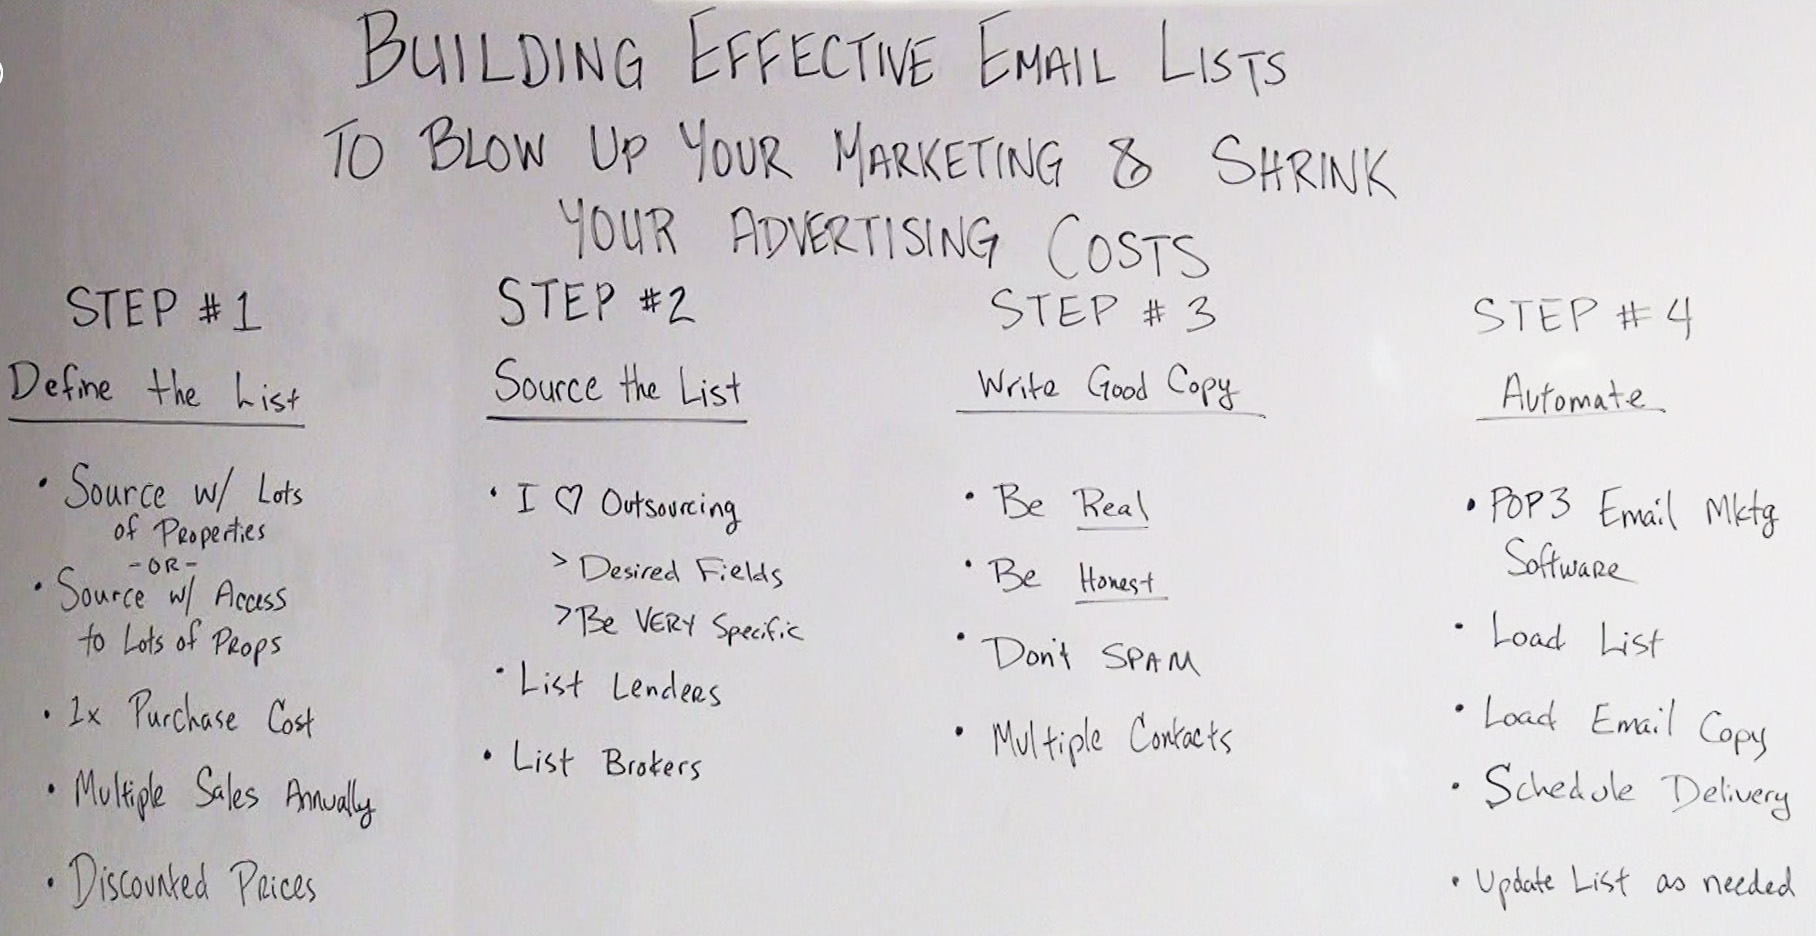 Building Effective Email Lists